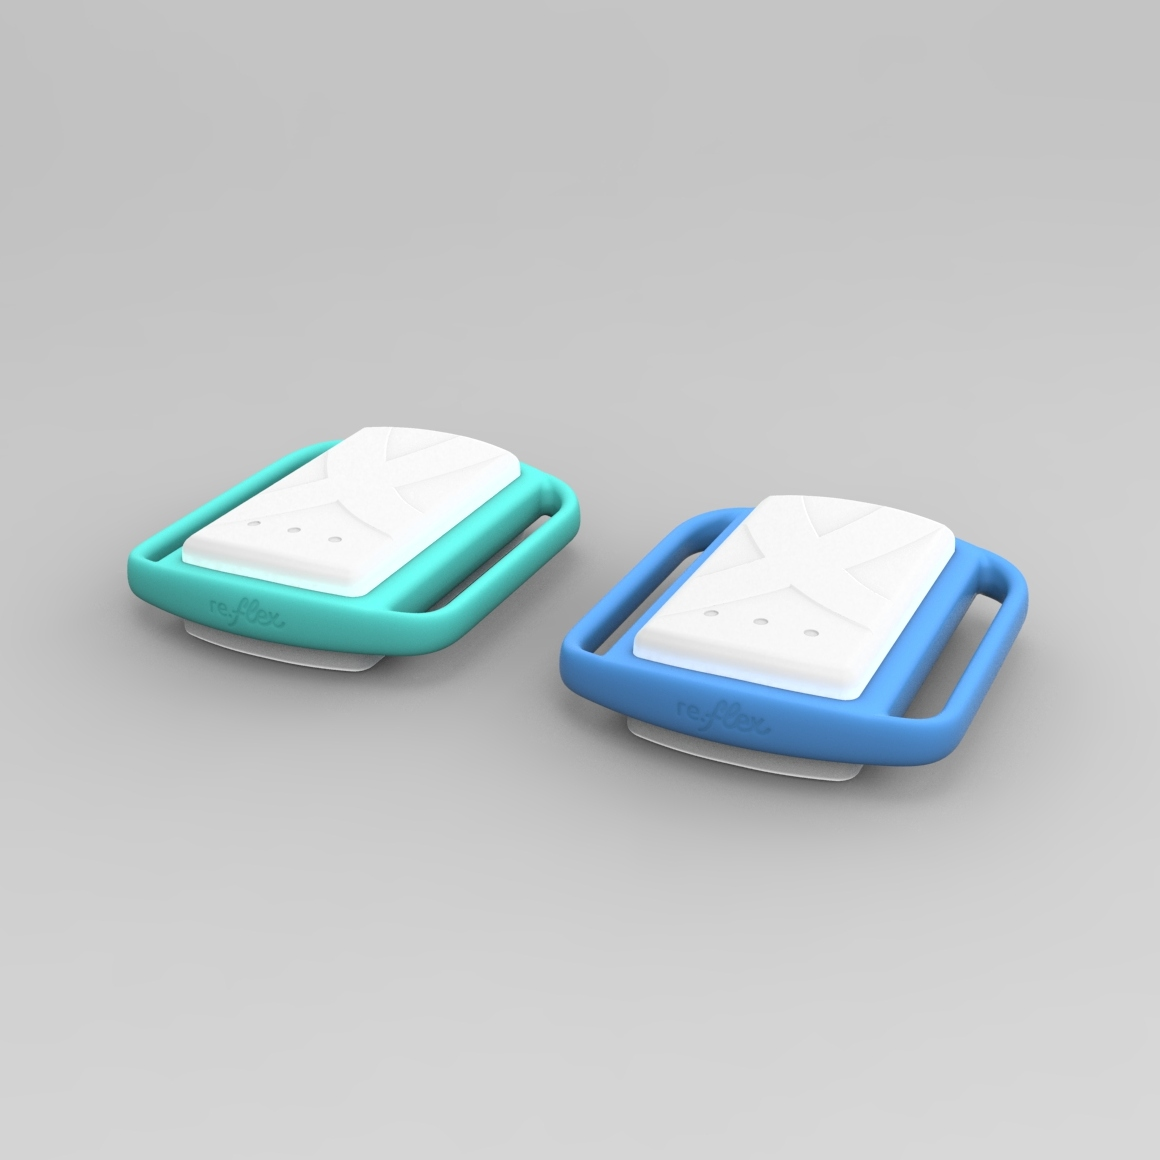 re.flex medical tracking device Project NOA Labs